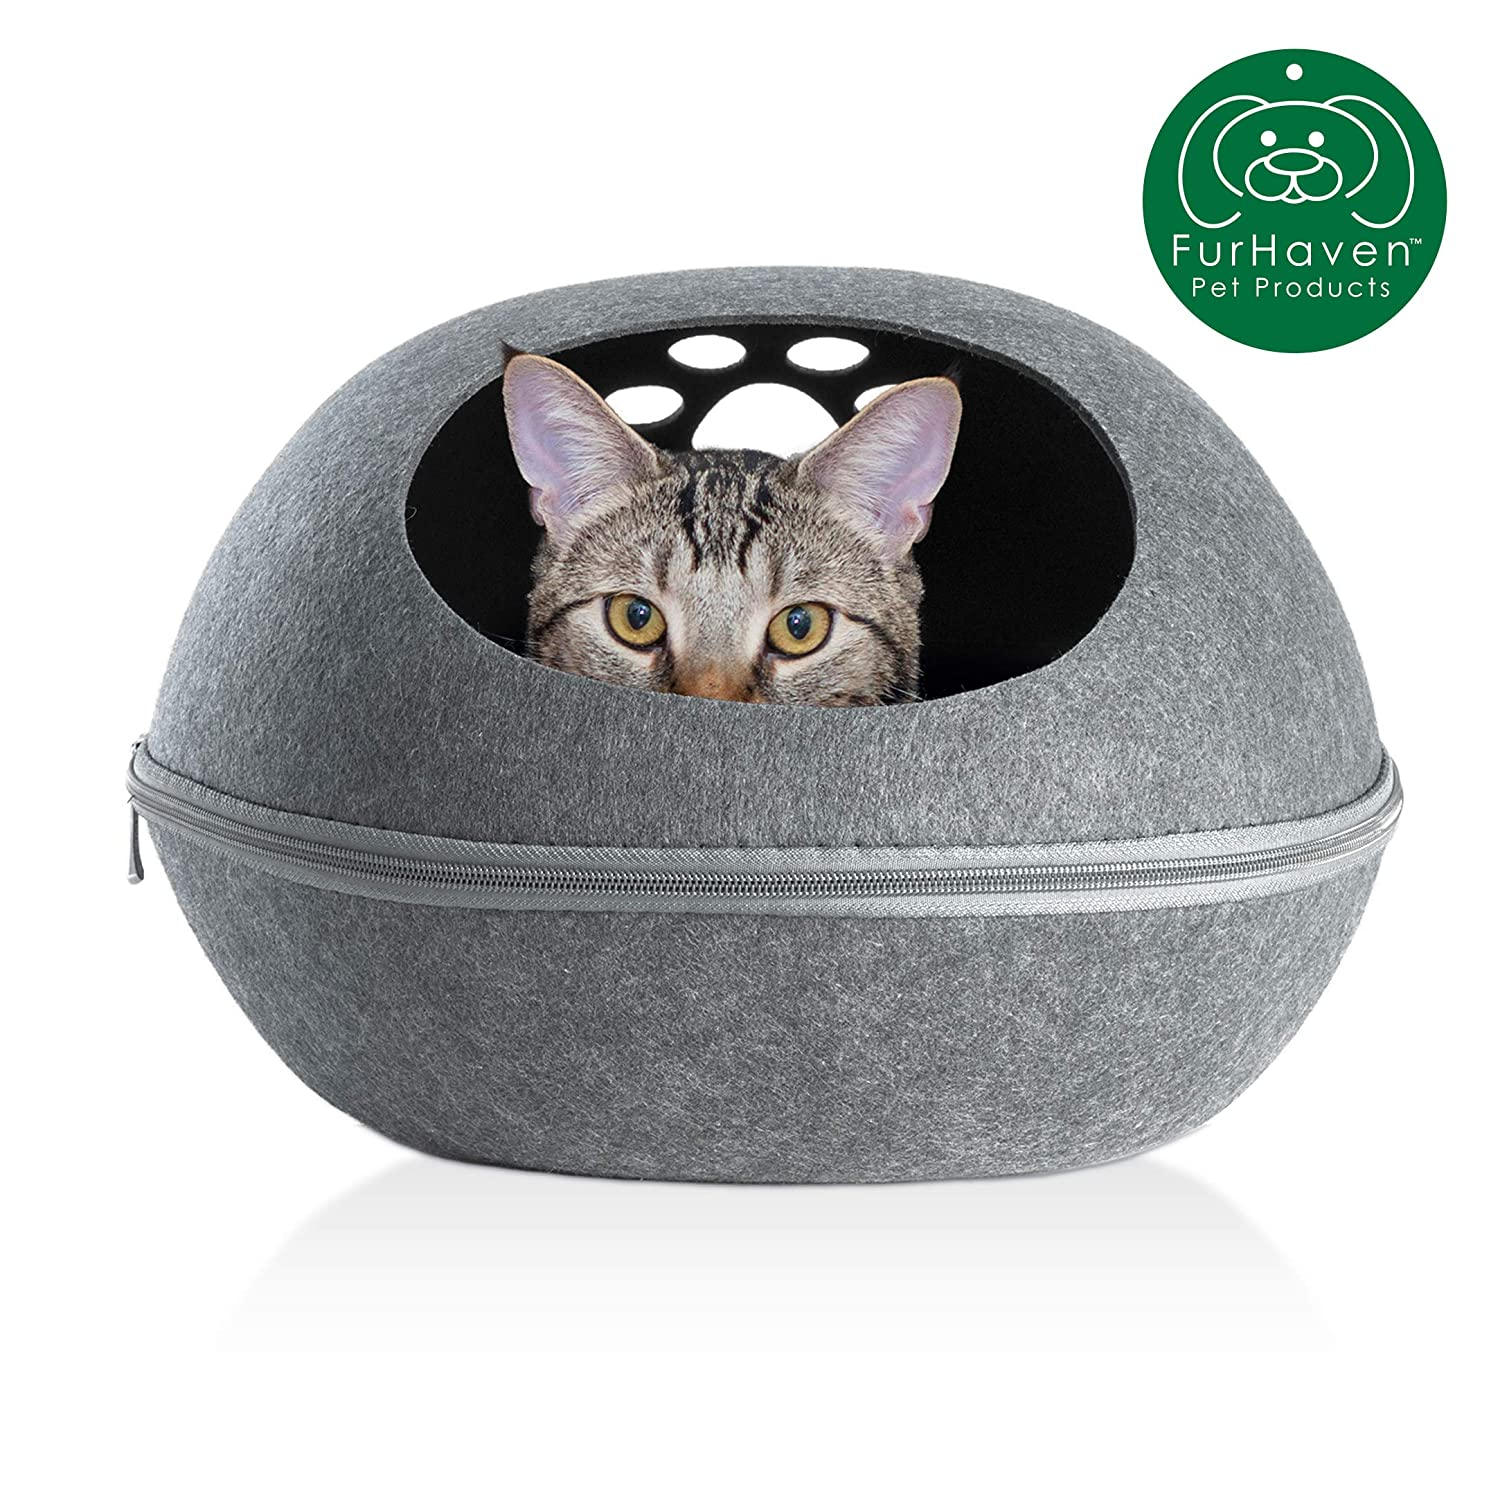 Sensational Furhaven Pet Dog Bed Felt Pet House Private Hideout Den Collapsible Pop Up Living Room Ottoman Footstool Condo For Cats Small Dogs Available Inzonedesignstudio Interior Chair Design Inzonedesignstudiocom